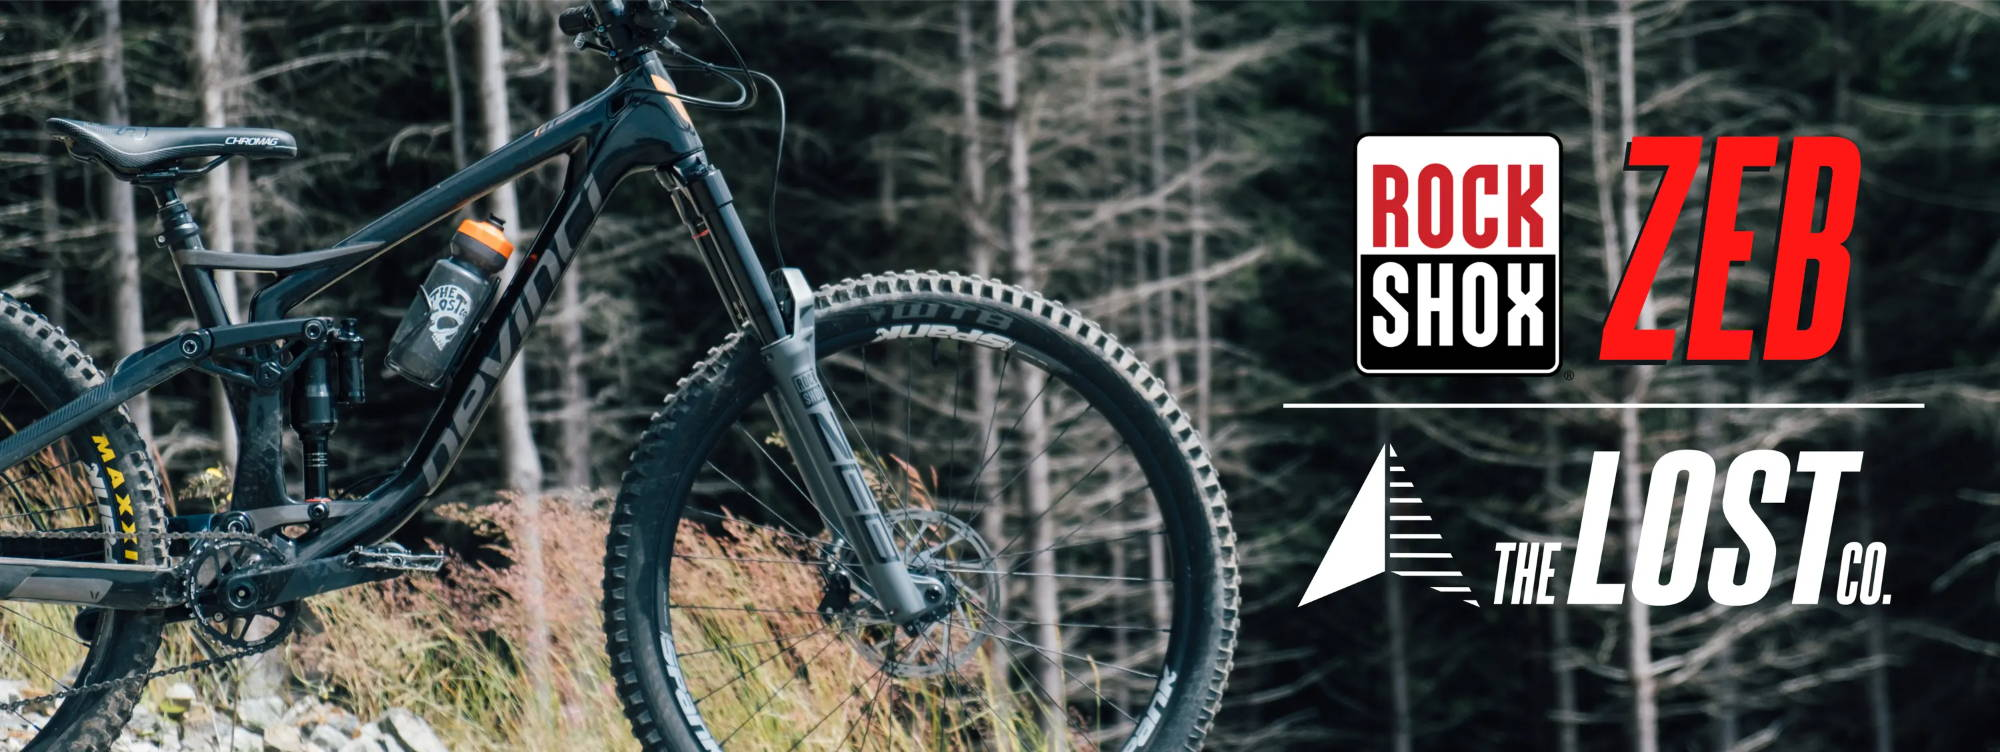 Rockshox Zeb Ultimate on a devinci spartan with rockshox and the lost co logos